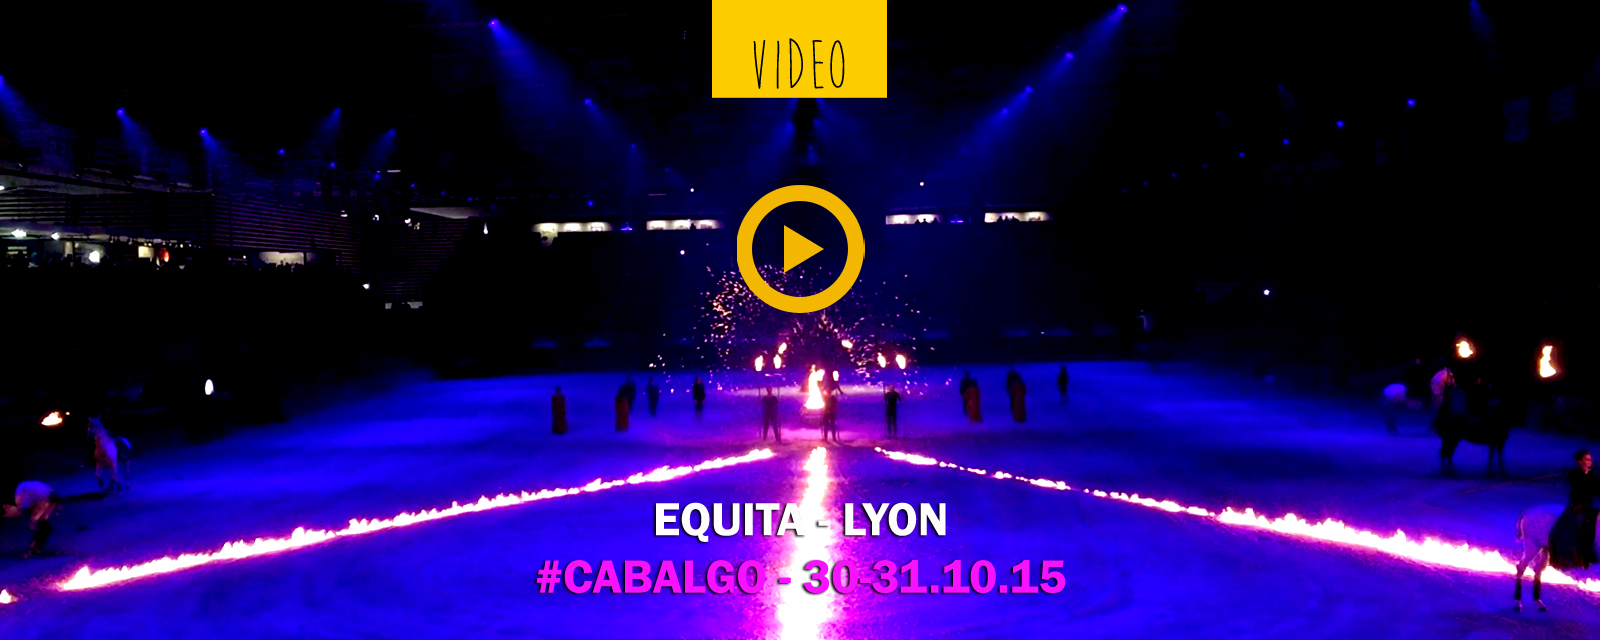 Video Spectacle Cabalgo